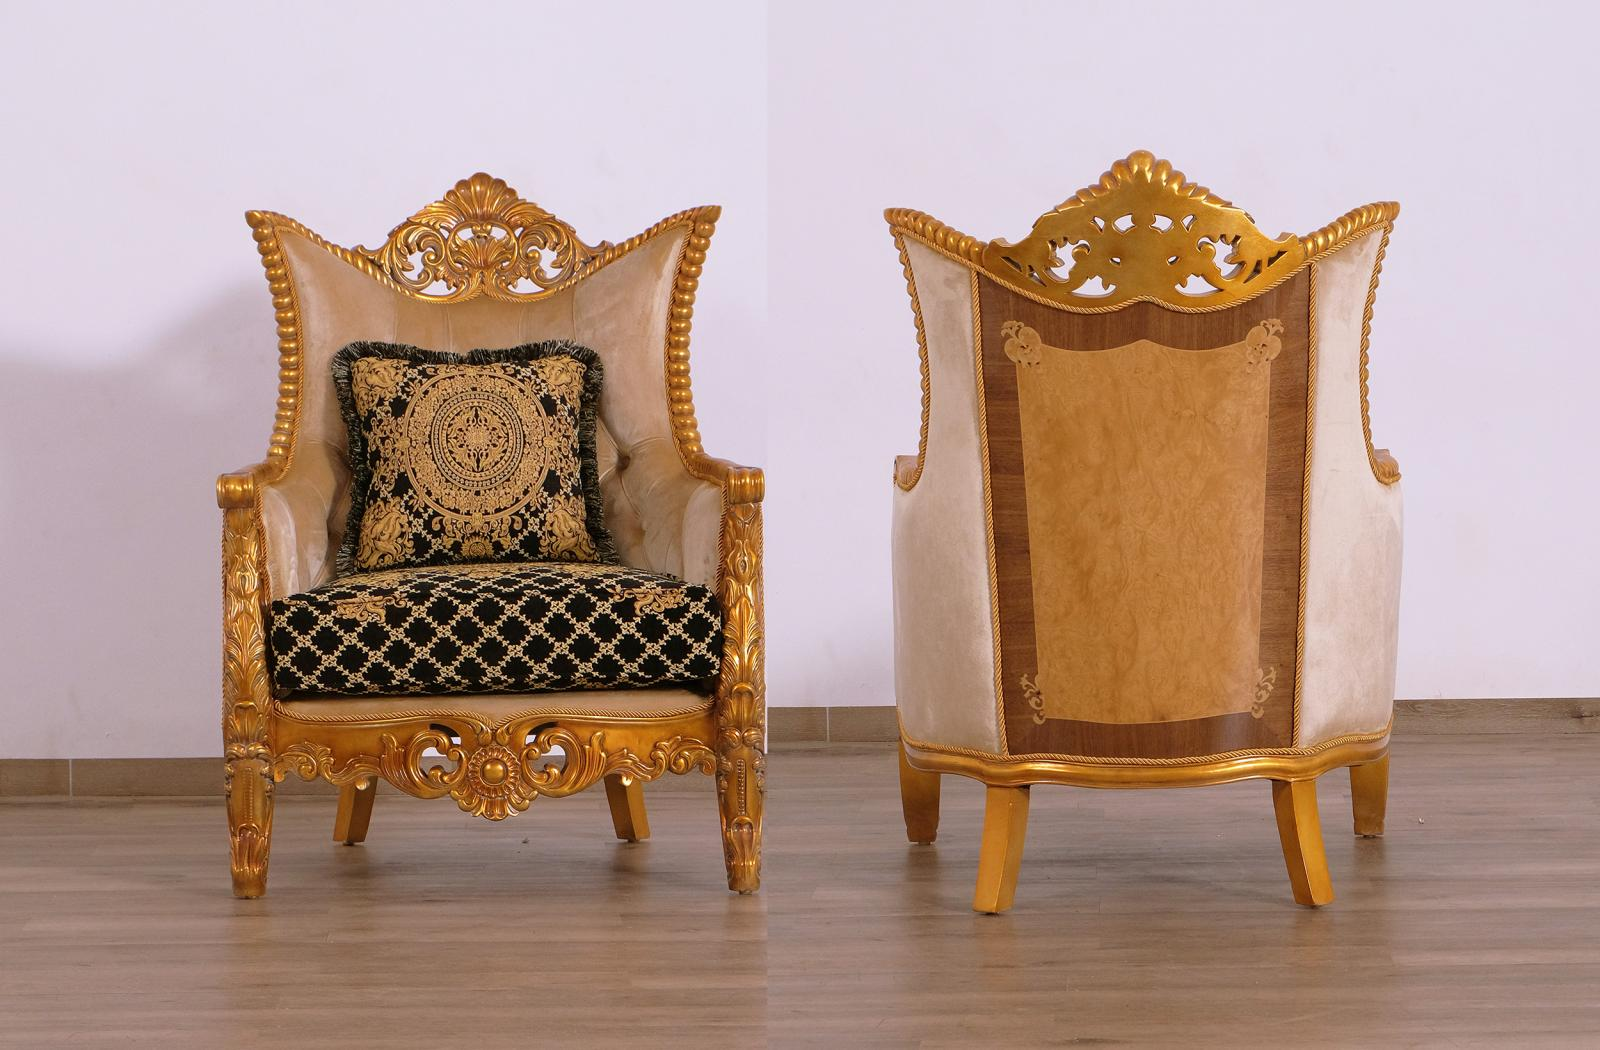 Classic  Traditional Black  Gold Wood  Solid Hardwood and Fabric Arm Chair Set EUROPEAN FURNITURE 31052-C-Set-2